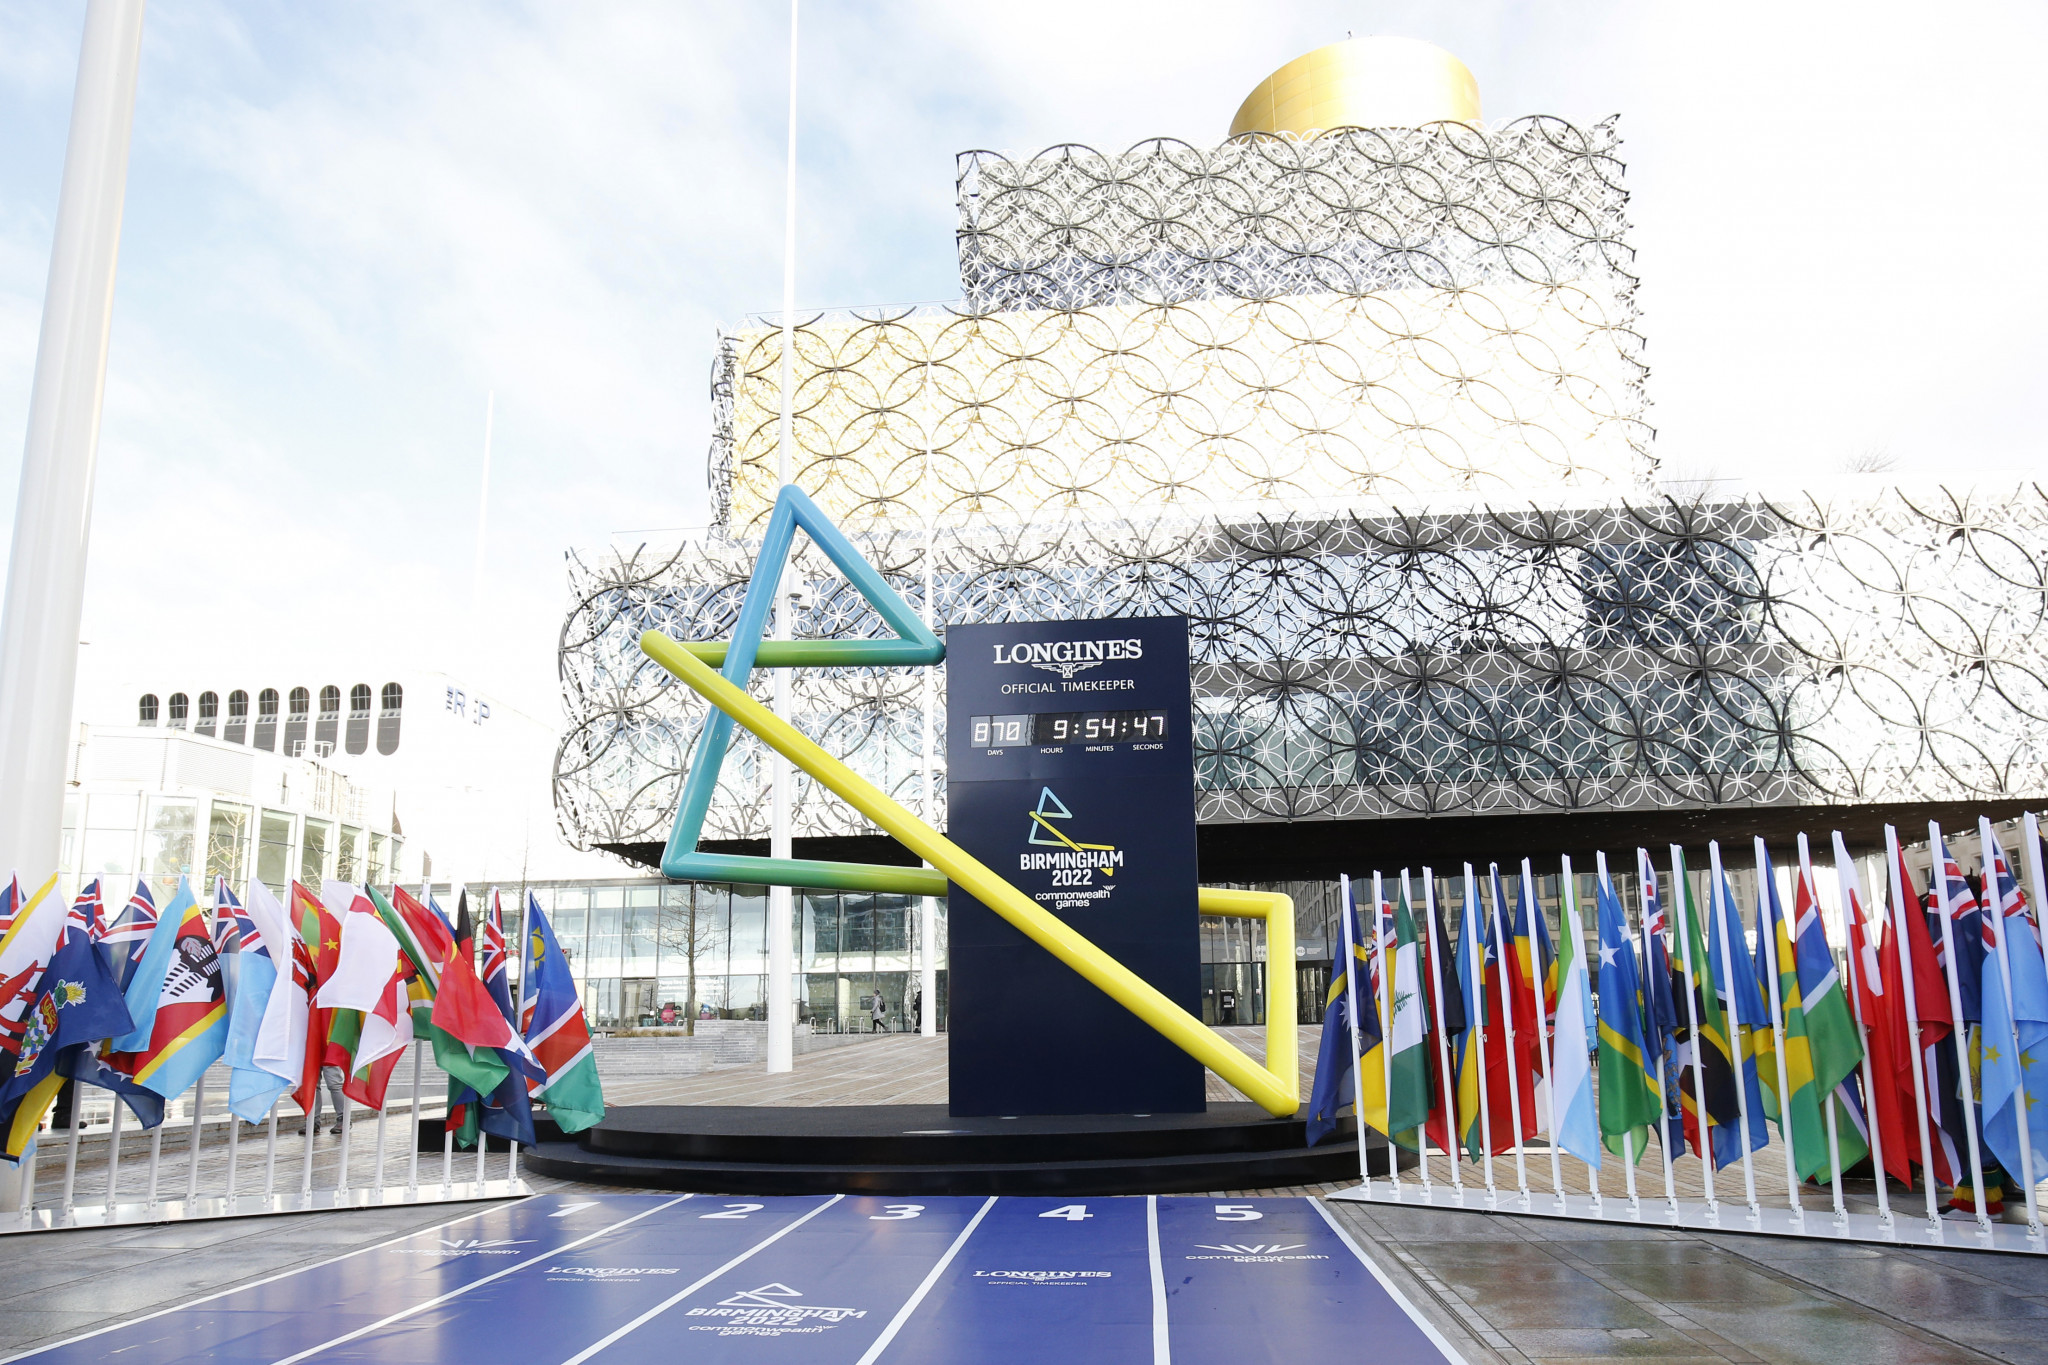 Sunset+Vine named host broadcaster for Birmingham 2022 Commonwealth Games